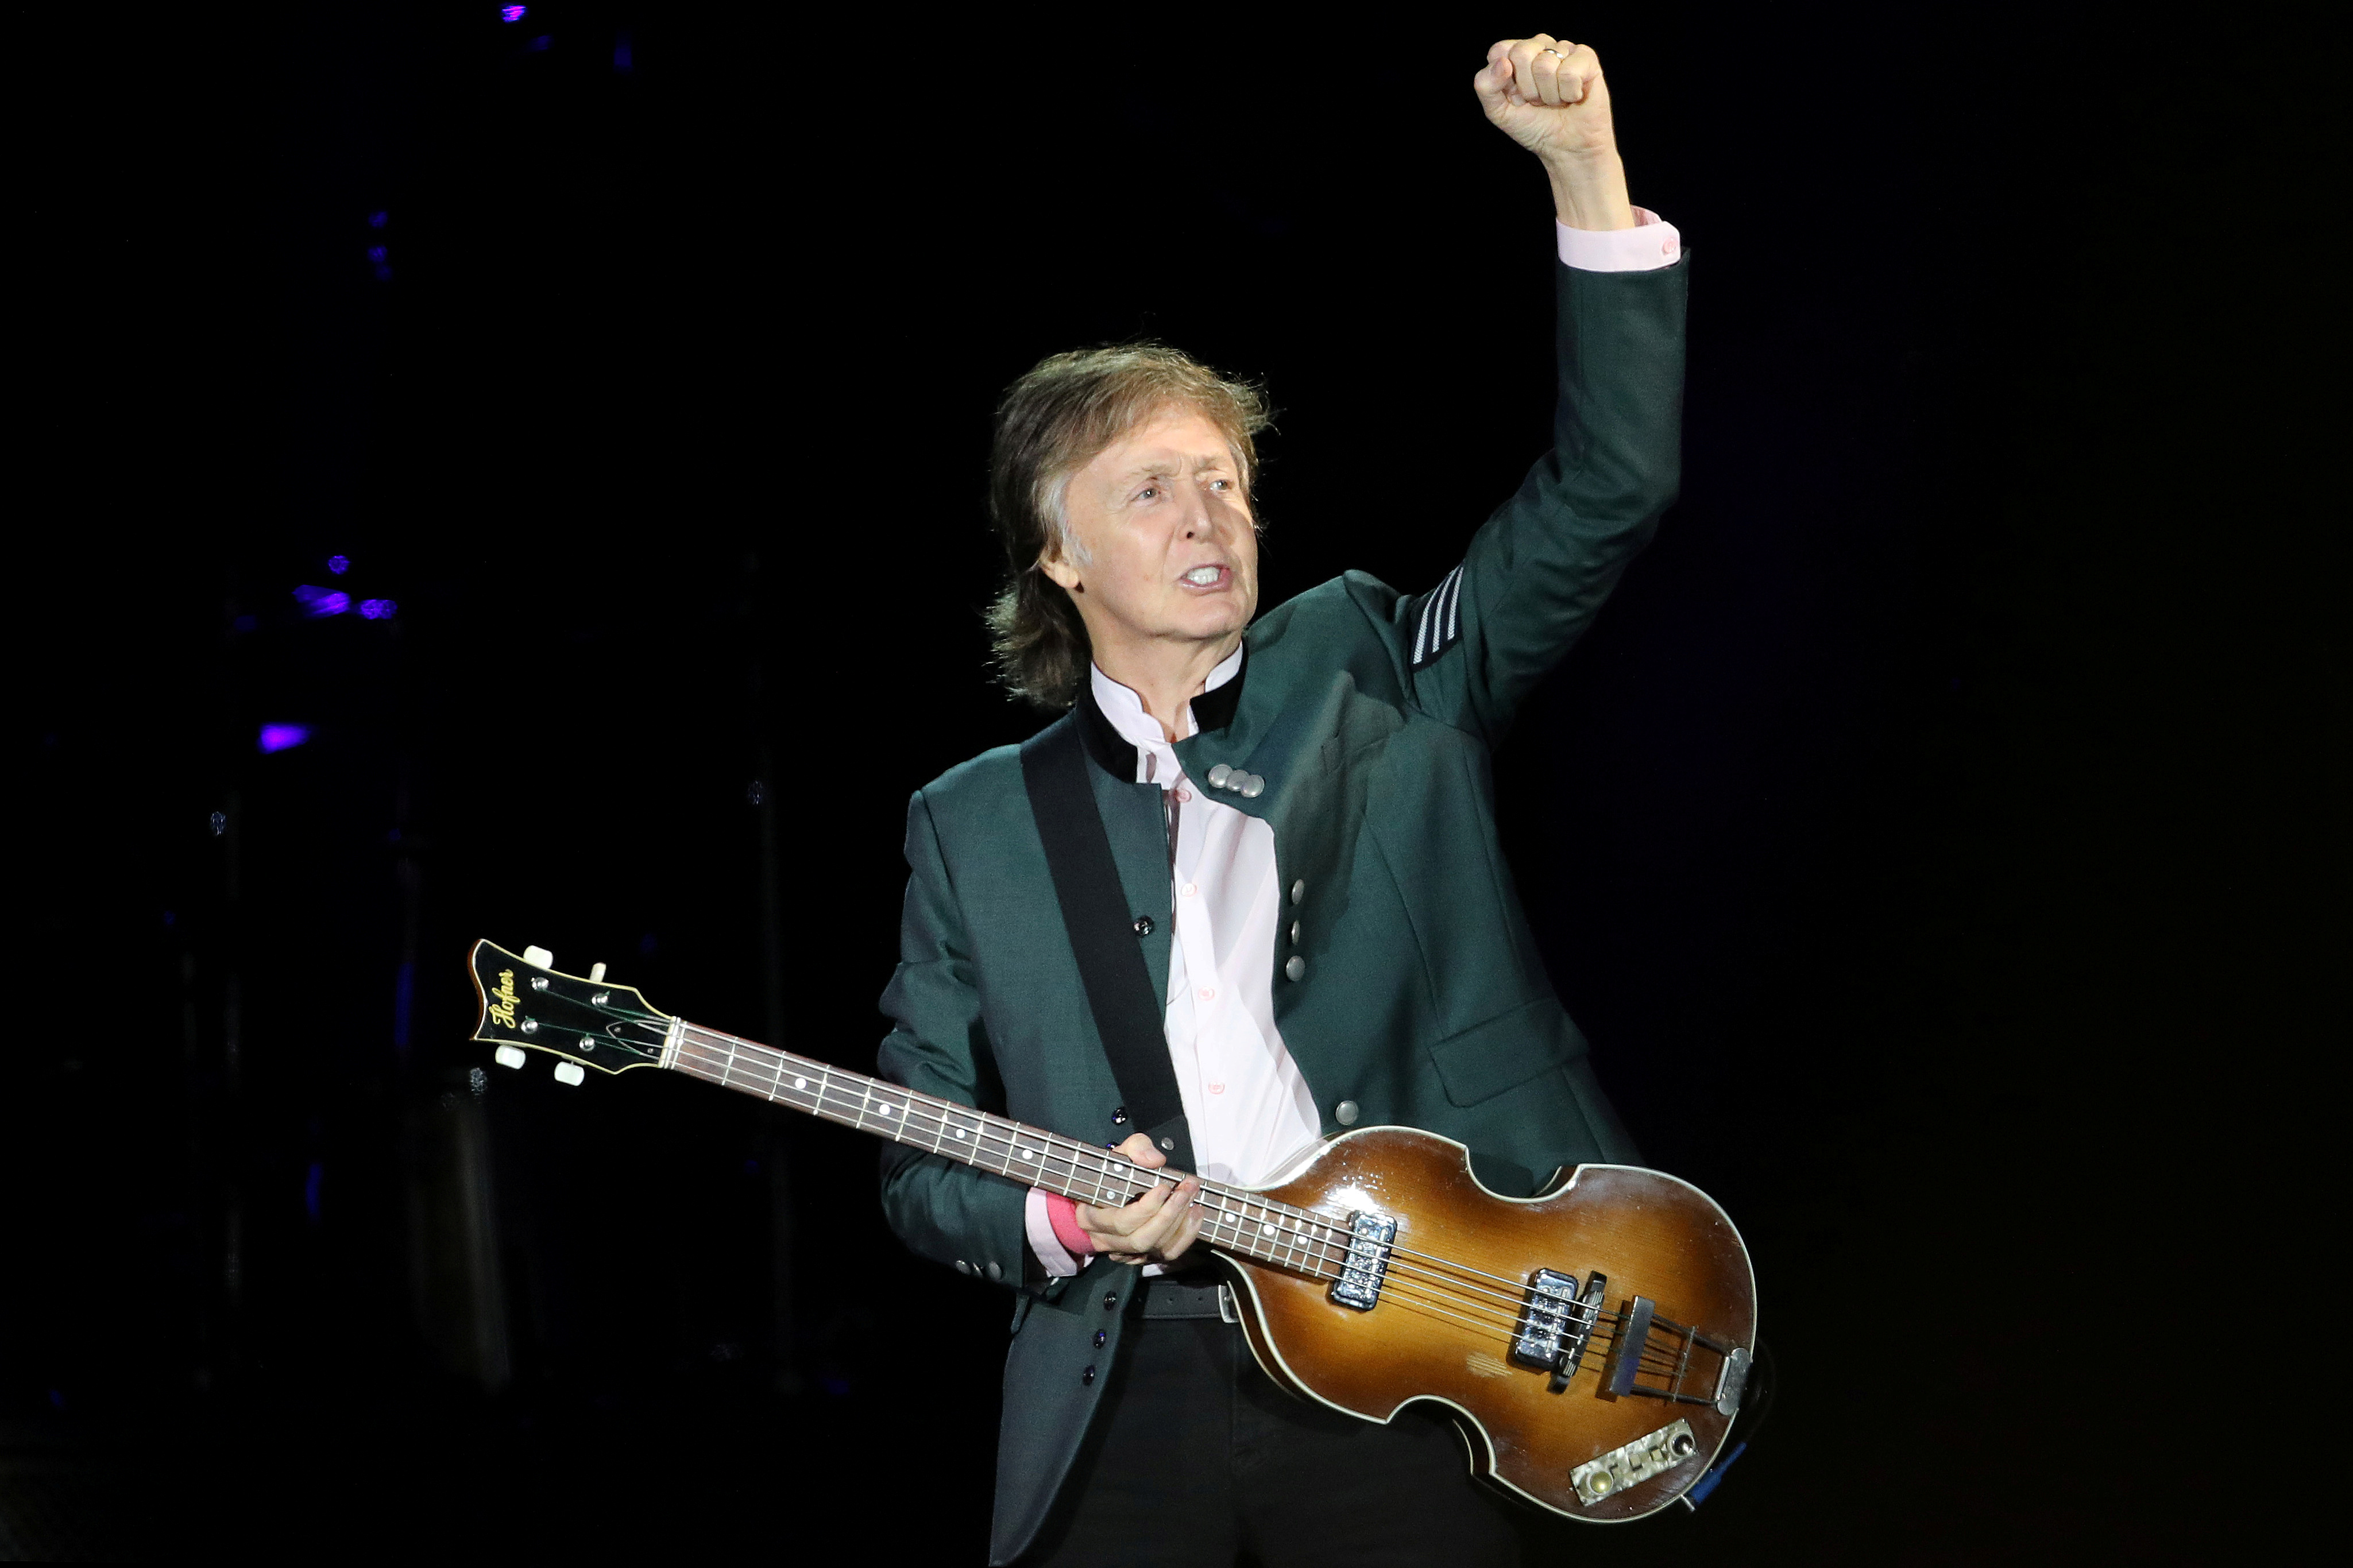 British musician Paul McCartney performs during the